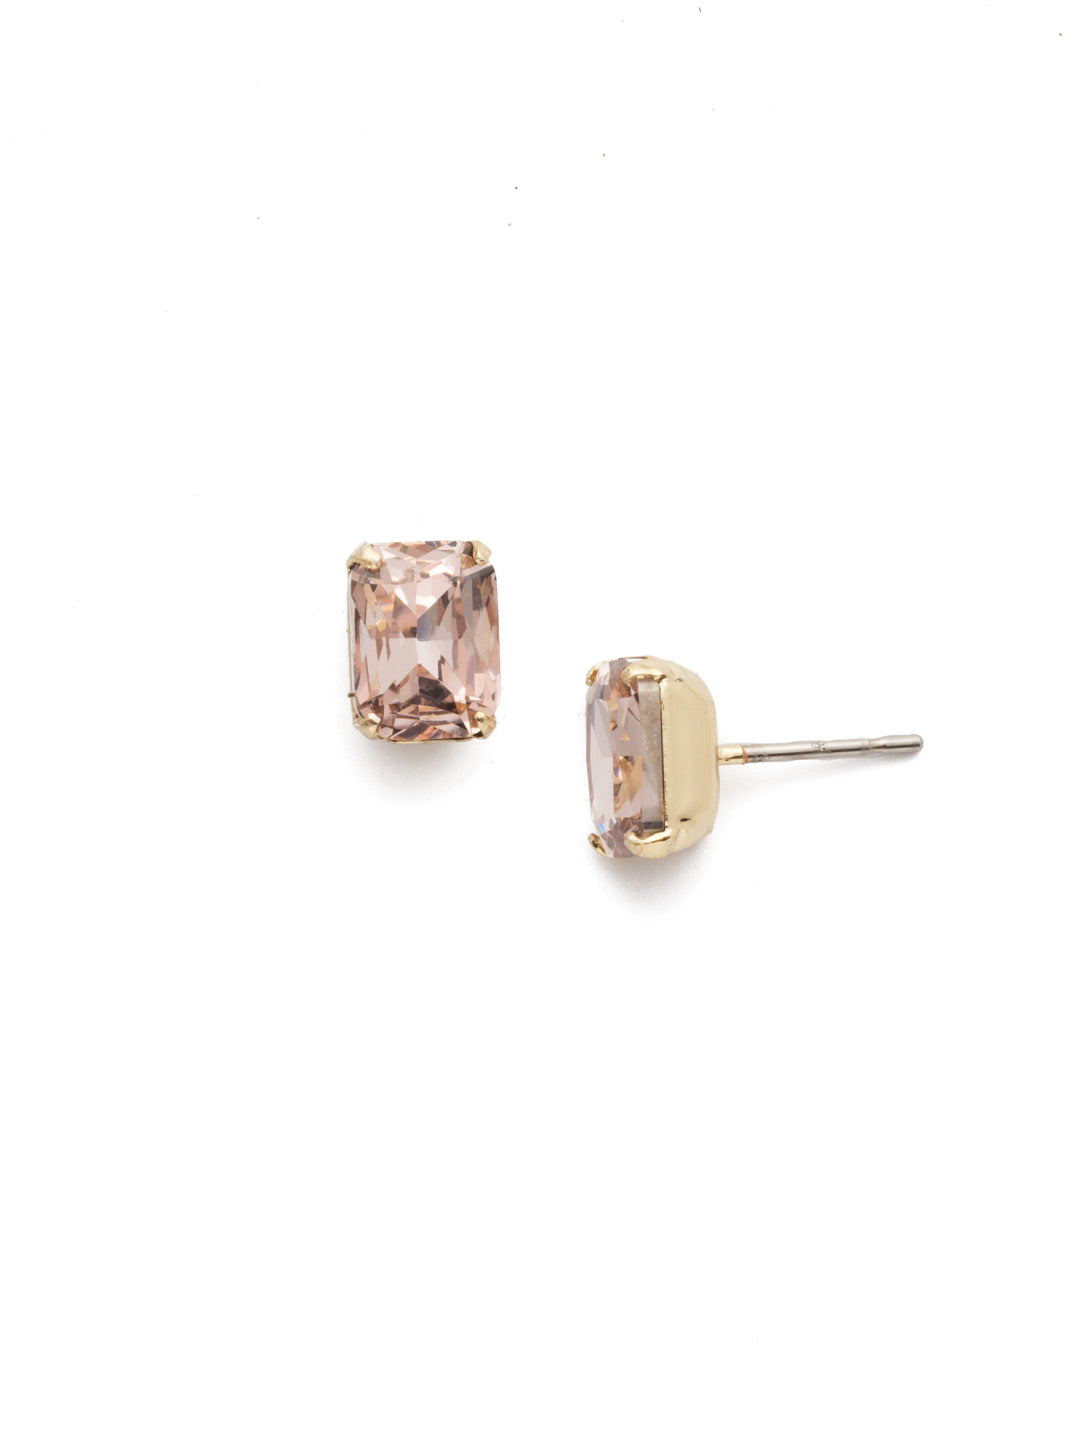 Mini Emerald Cut Stud Earring - Sorrelli Essentials - EBY42BGVIN